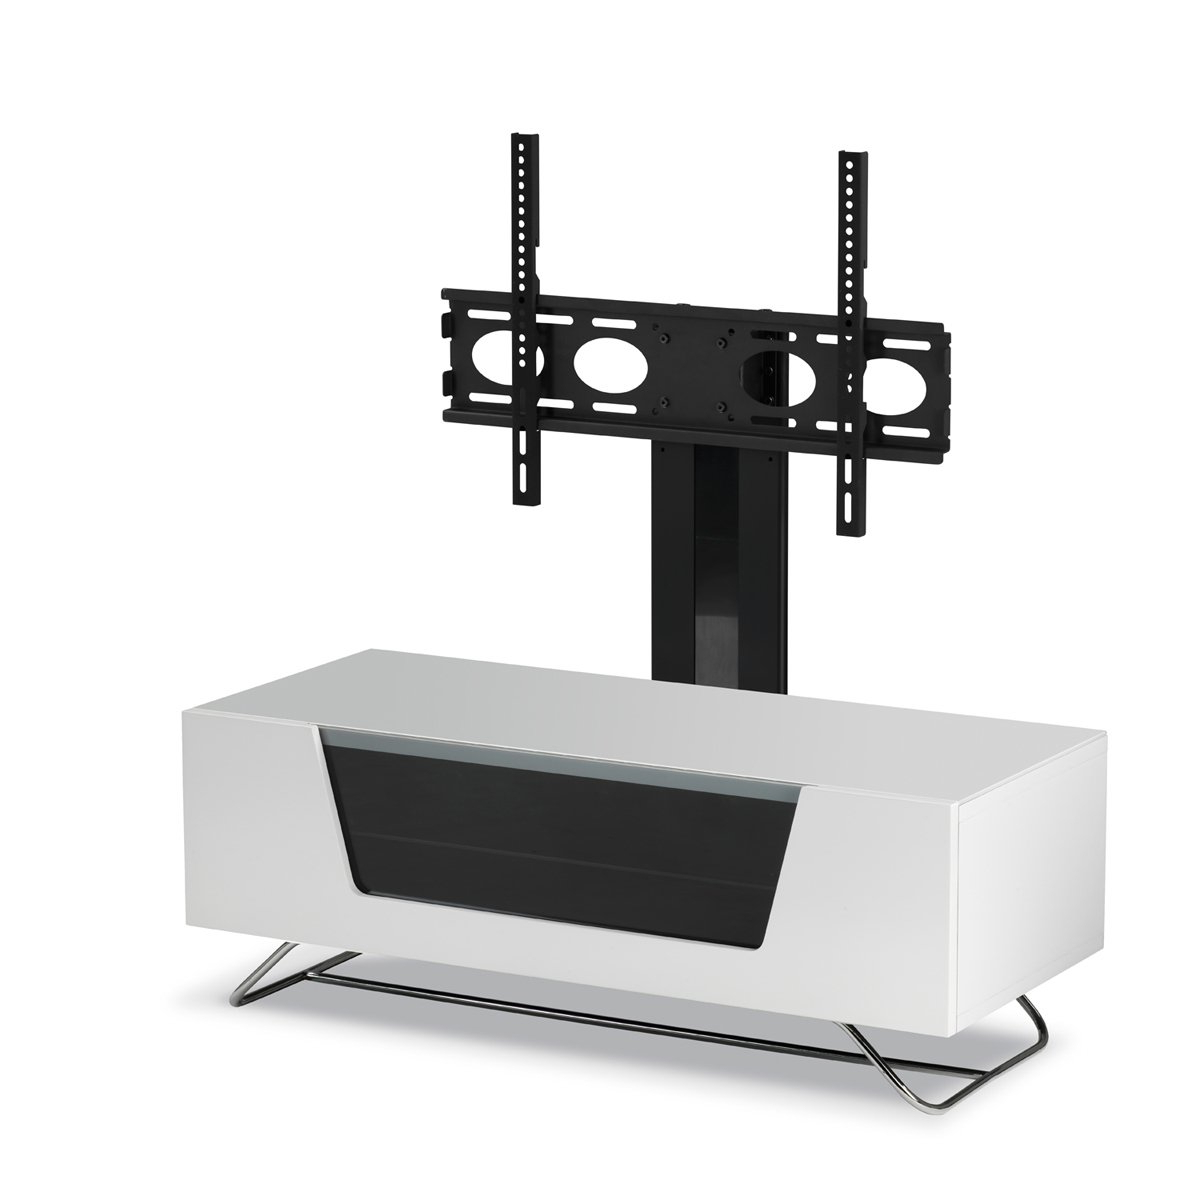 Widely Used White Cantilever Tv Stands Inside Alphason Chromium White Cantilever Tv Stand: Amazon.co (View 19 of 20)